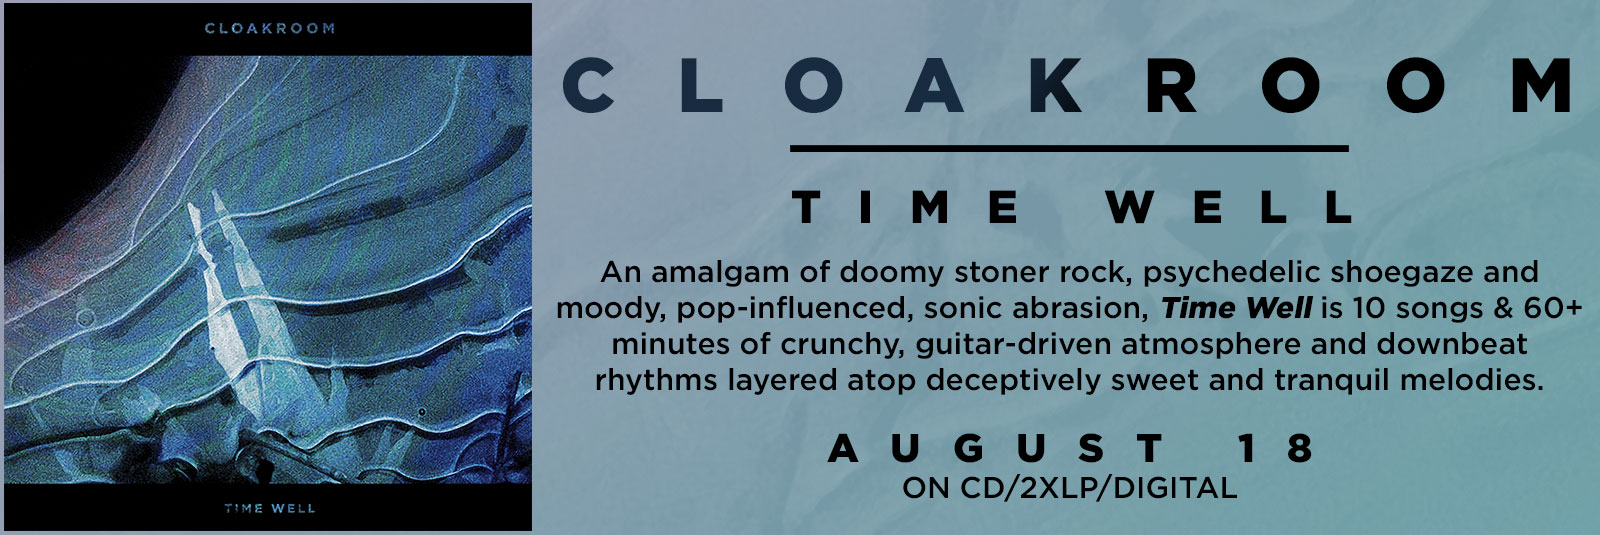 cloakroom-time-well-relapse-records